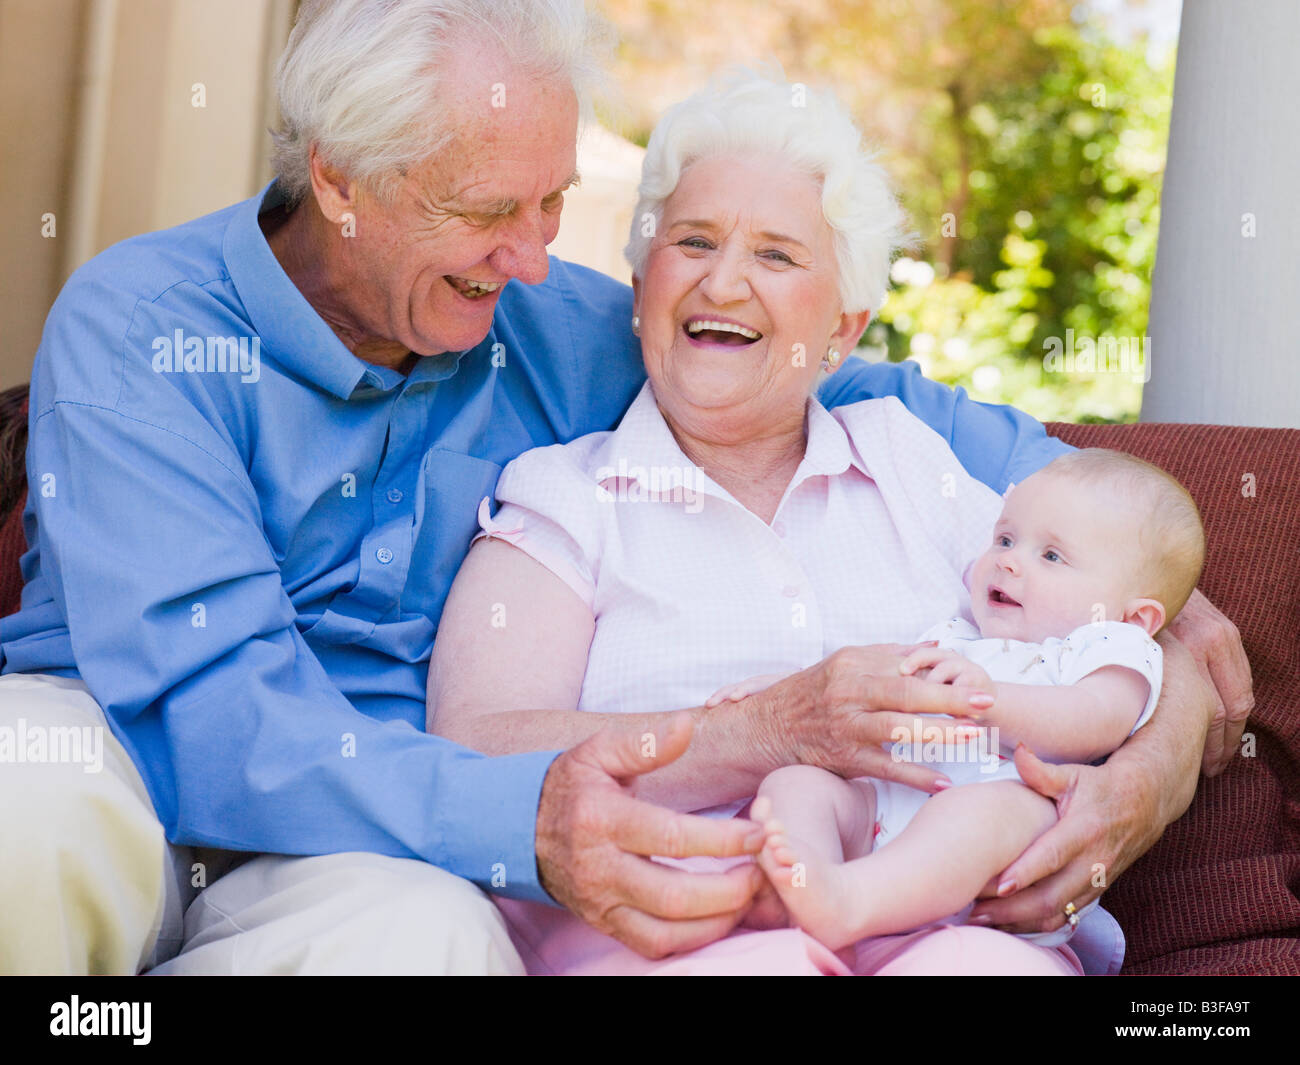 Grandparents outdoors on patio with baby smiling - Stock Image